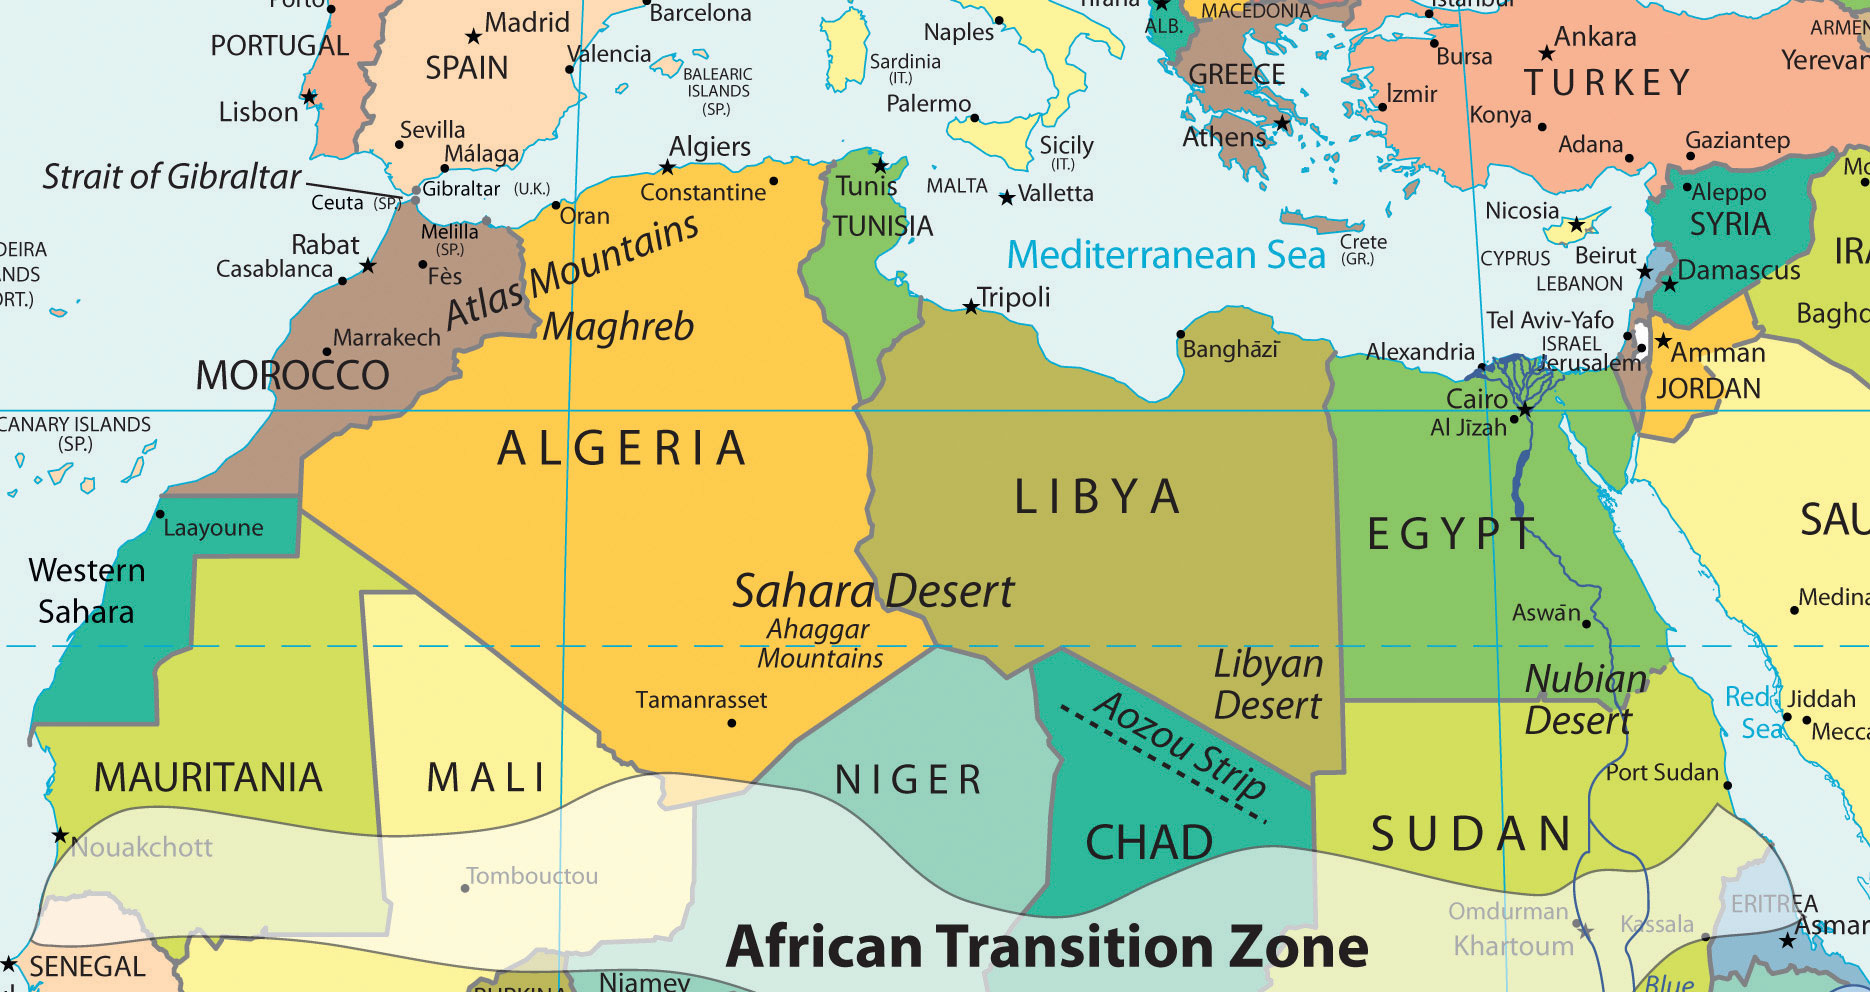 8.3 North Africa and the African Transition Zone | World Regional